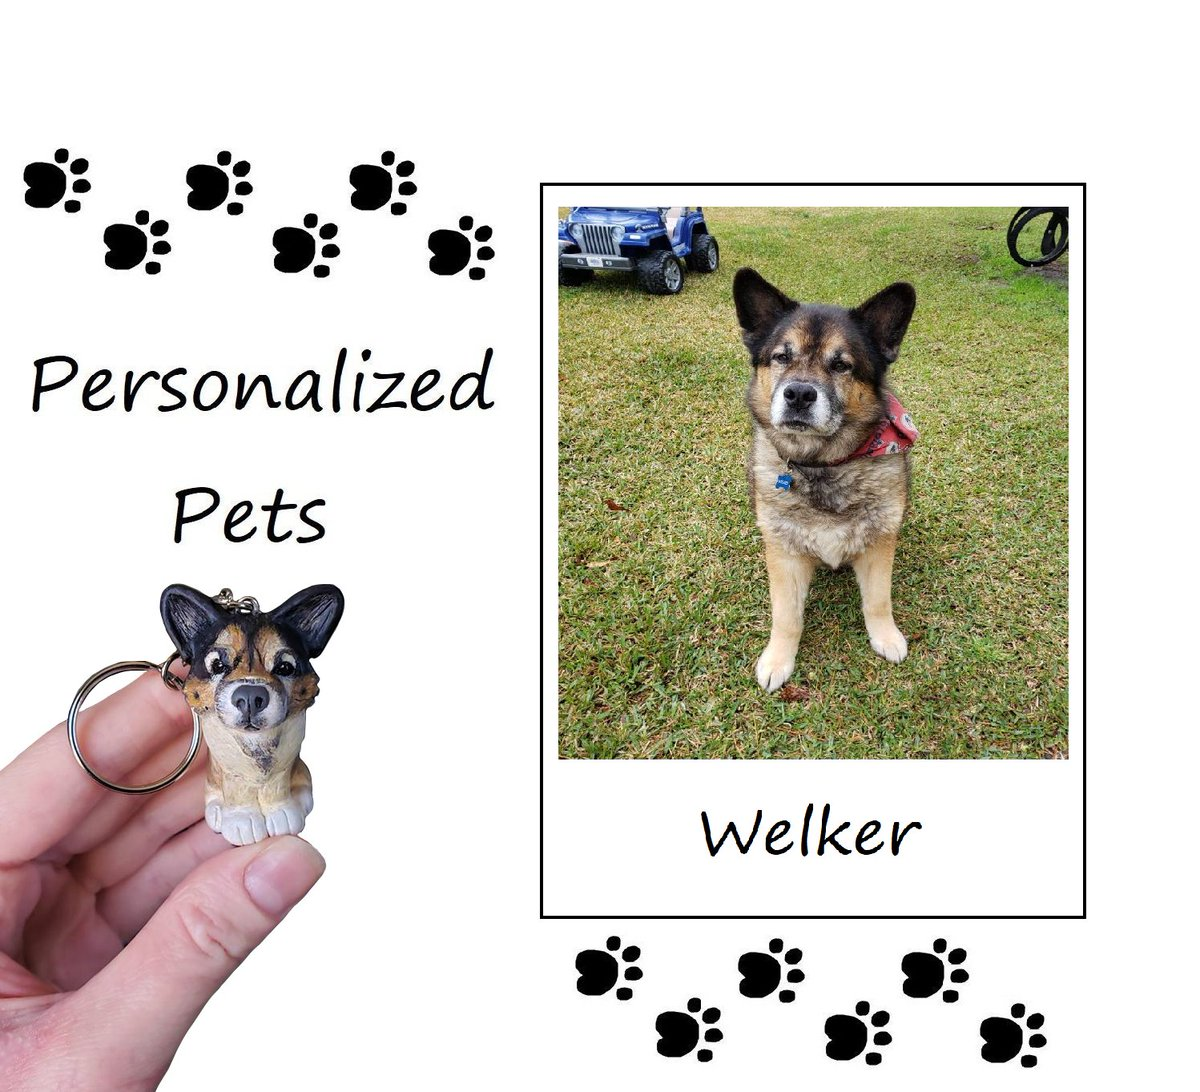 My most recent customer order of a personalized pet dog! Shop link in bio! Video on YT! - #dogs #doggy #pets #etsy #etsyshop #etsysellers #polymerclay #clay #miniature #mini #sculpture #art  #keychain #handmade #crafts #craftspeople #handmadebyme #handmadehour #handmadegifts